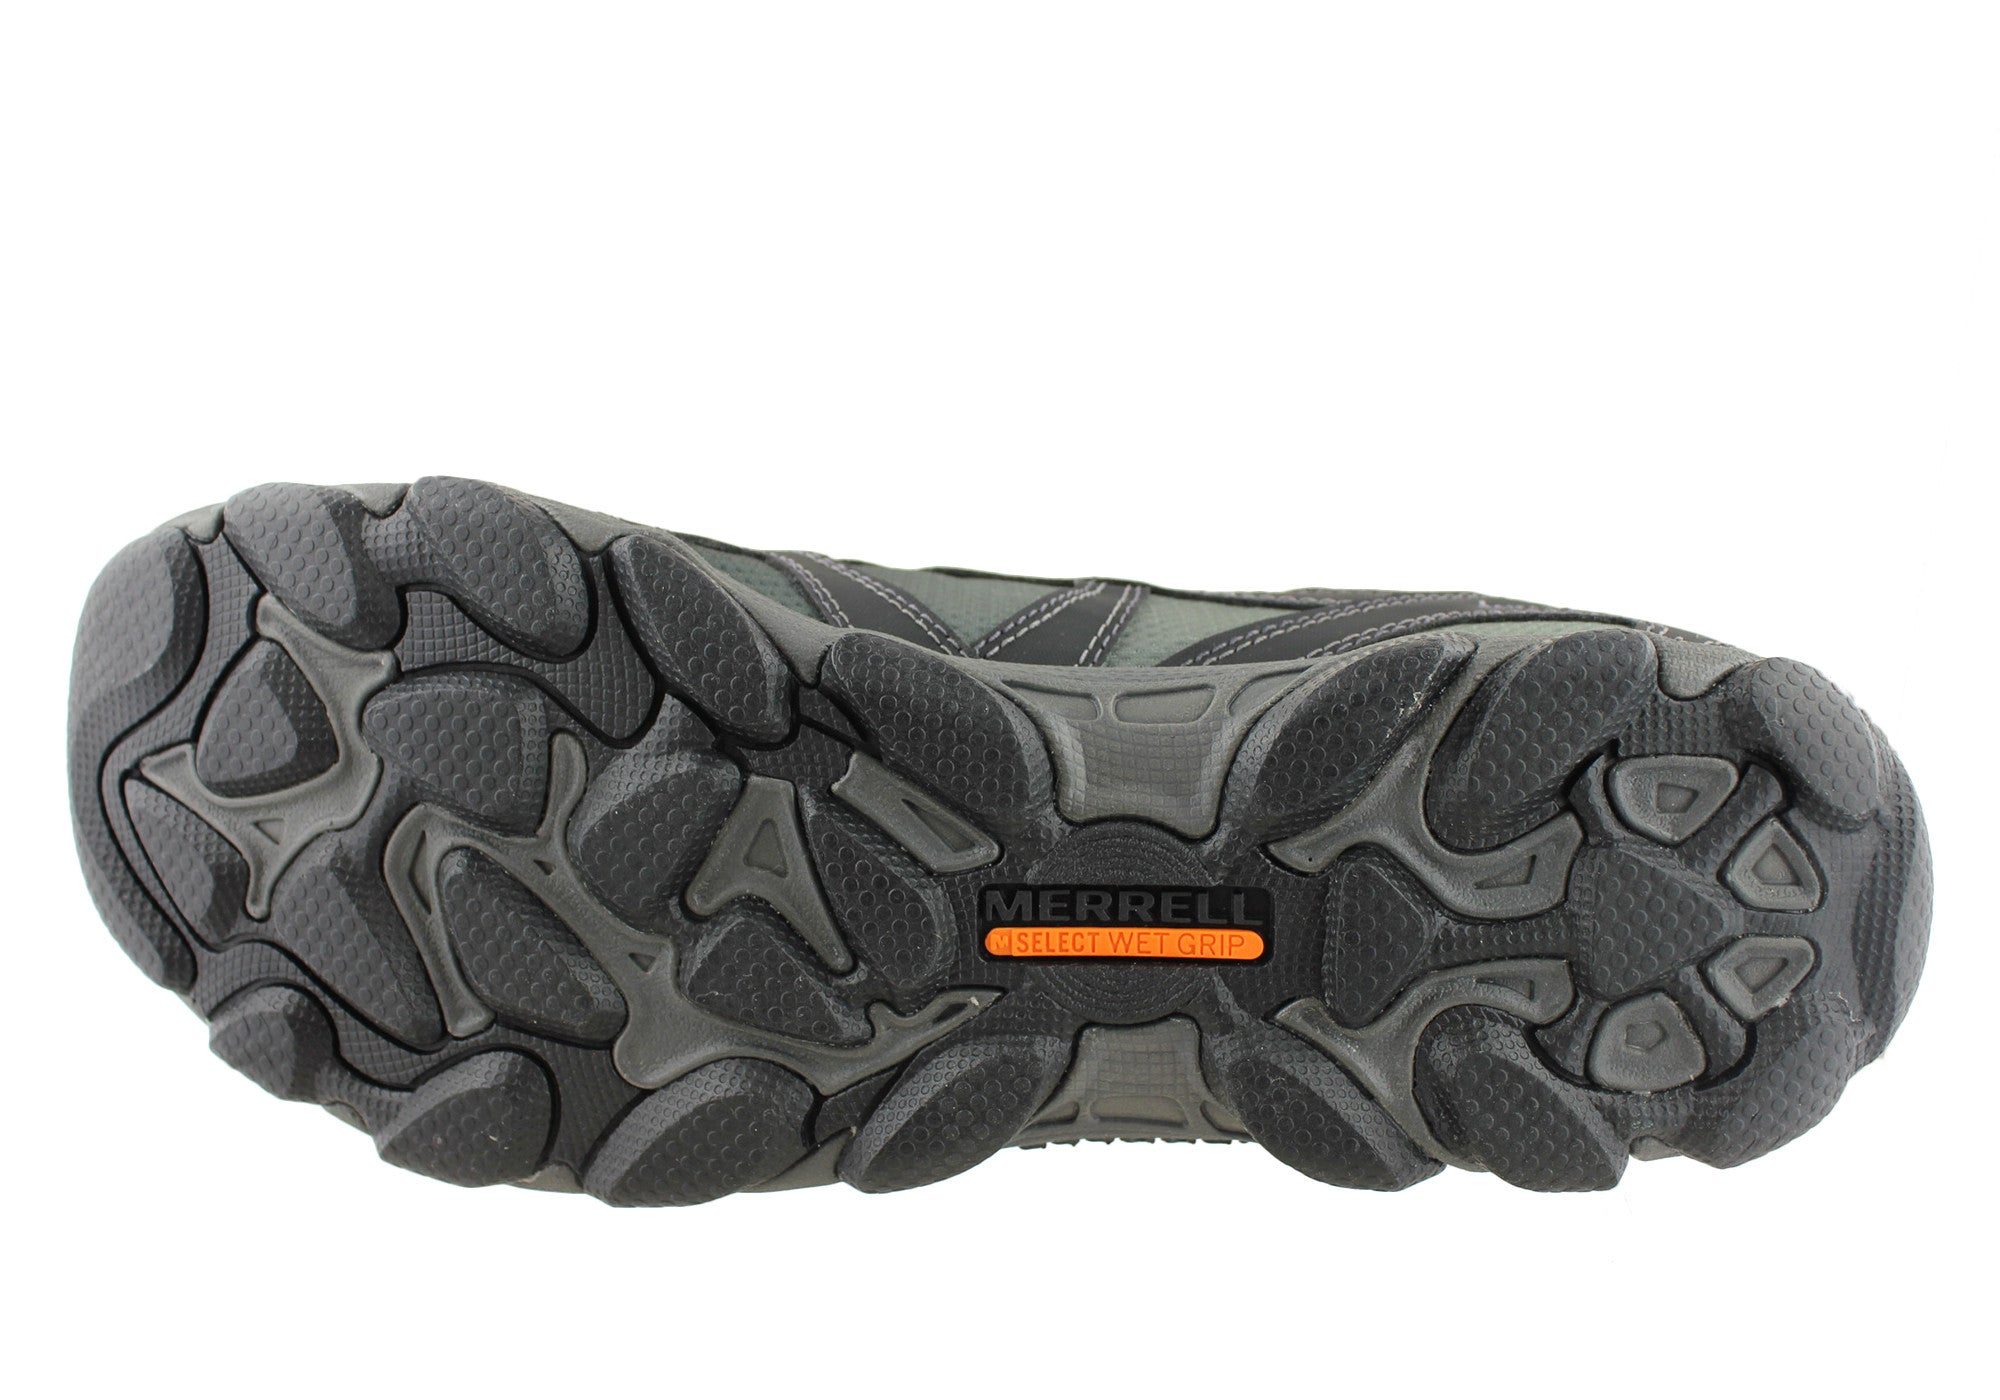 Merrell Hurricane Lace Mens Outdoor/Water Shoes